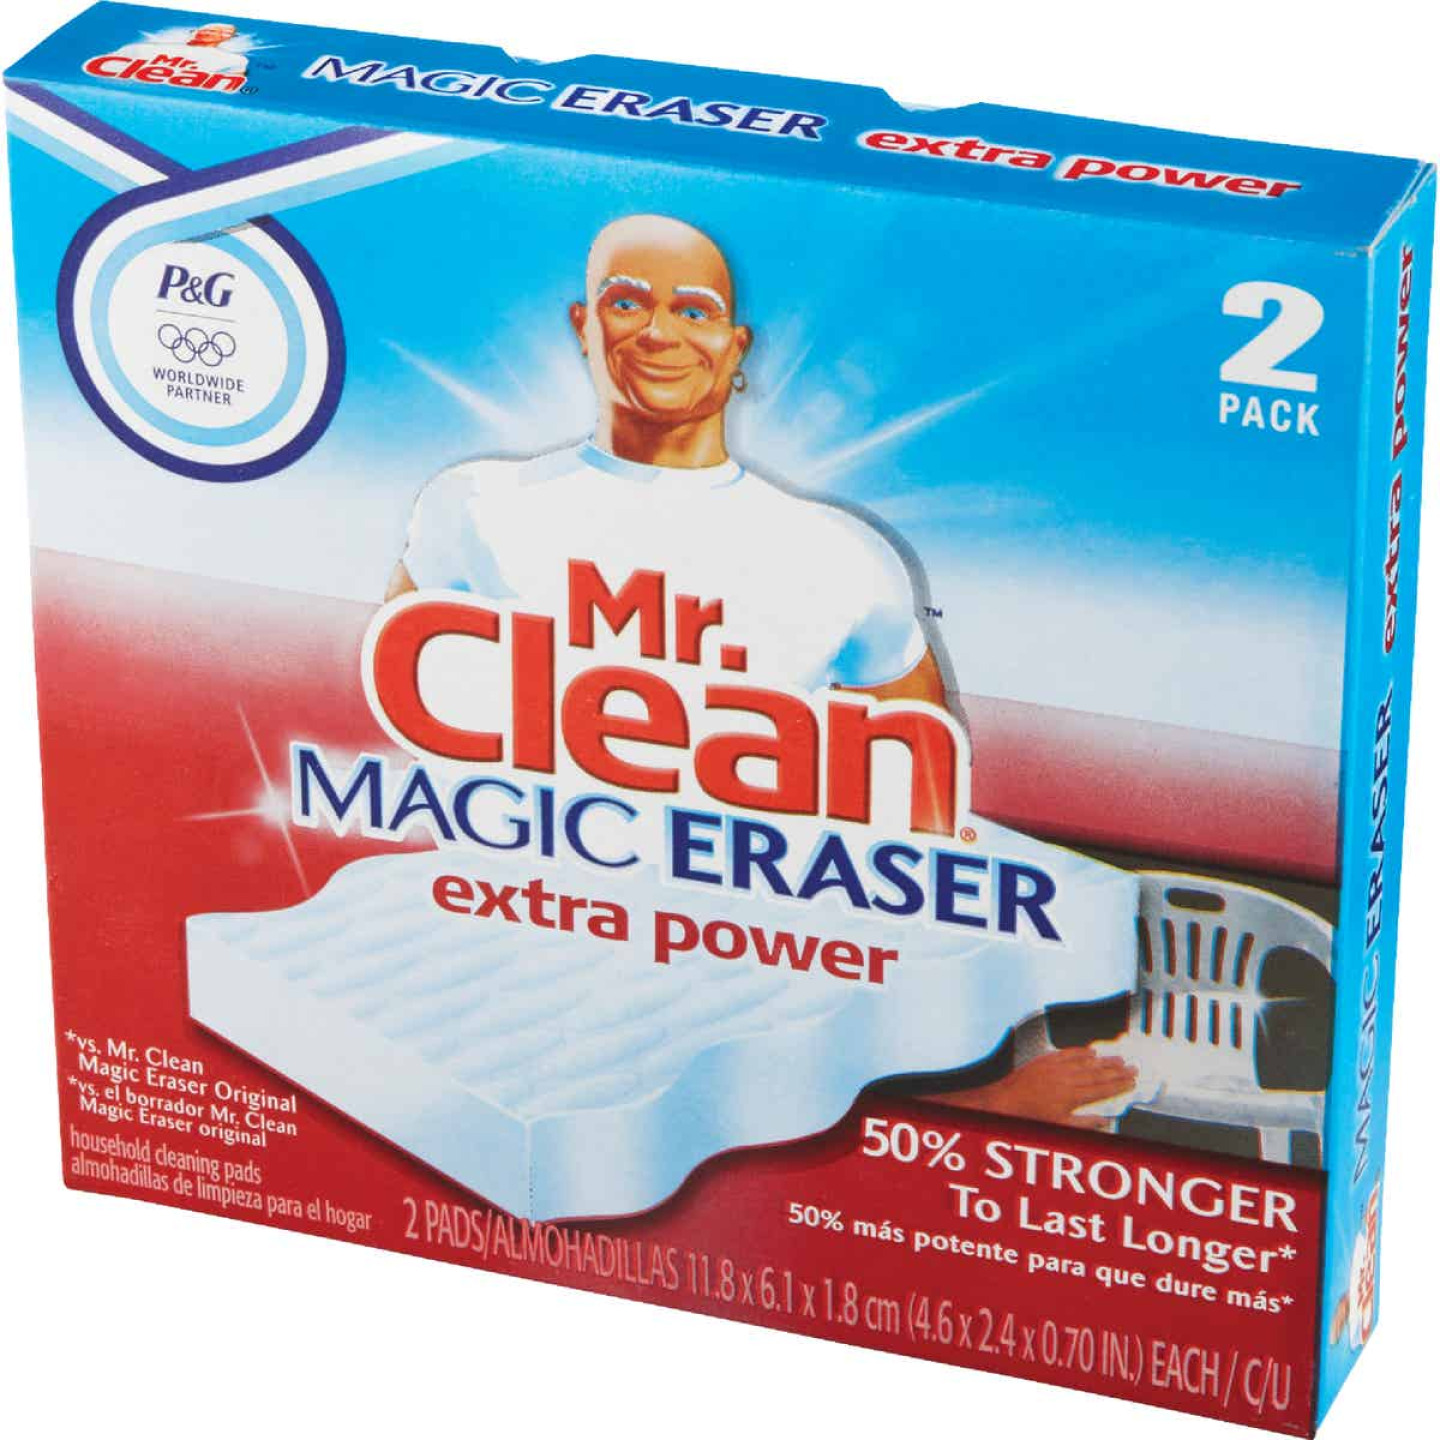 Mr. Clean Magic Eraser Cleansing Pad with Extra Power (2 Count) Image 3